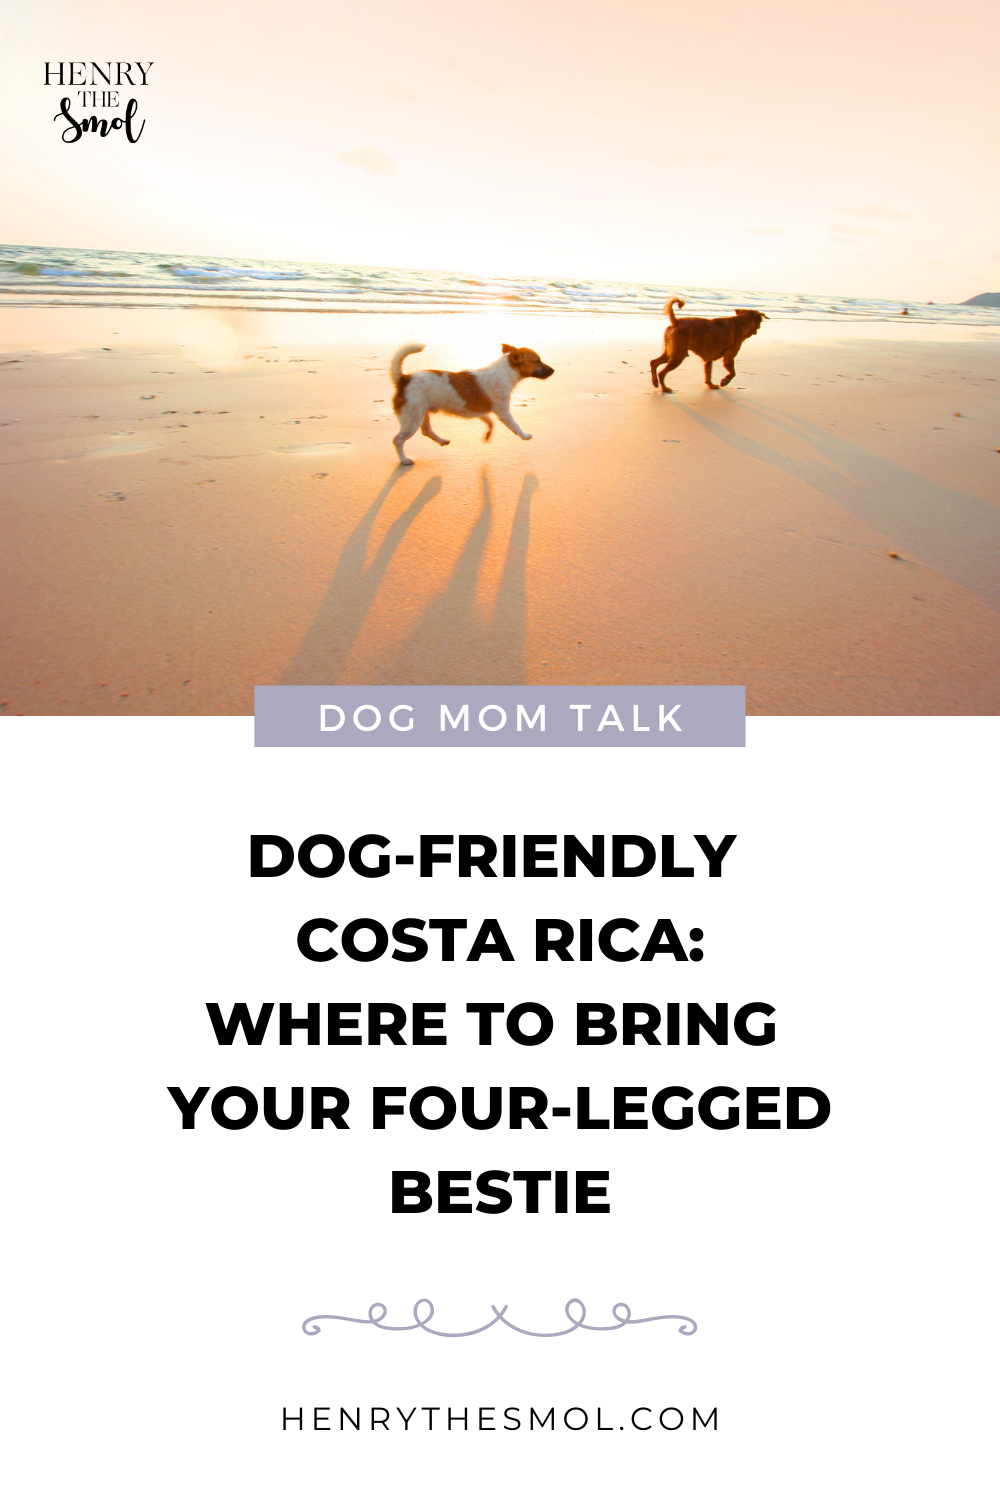 Dog Mom Talk: Dog-Friendly Costa Rica with Ana